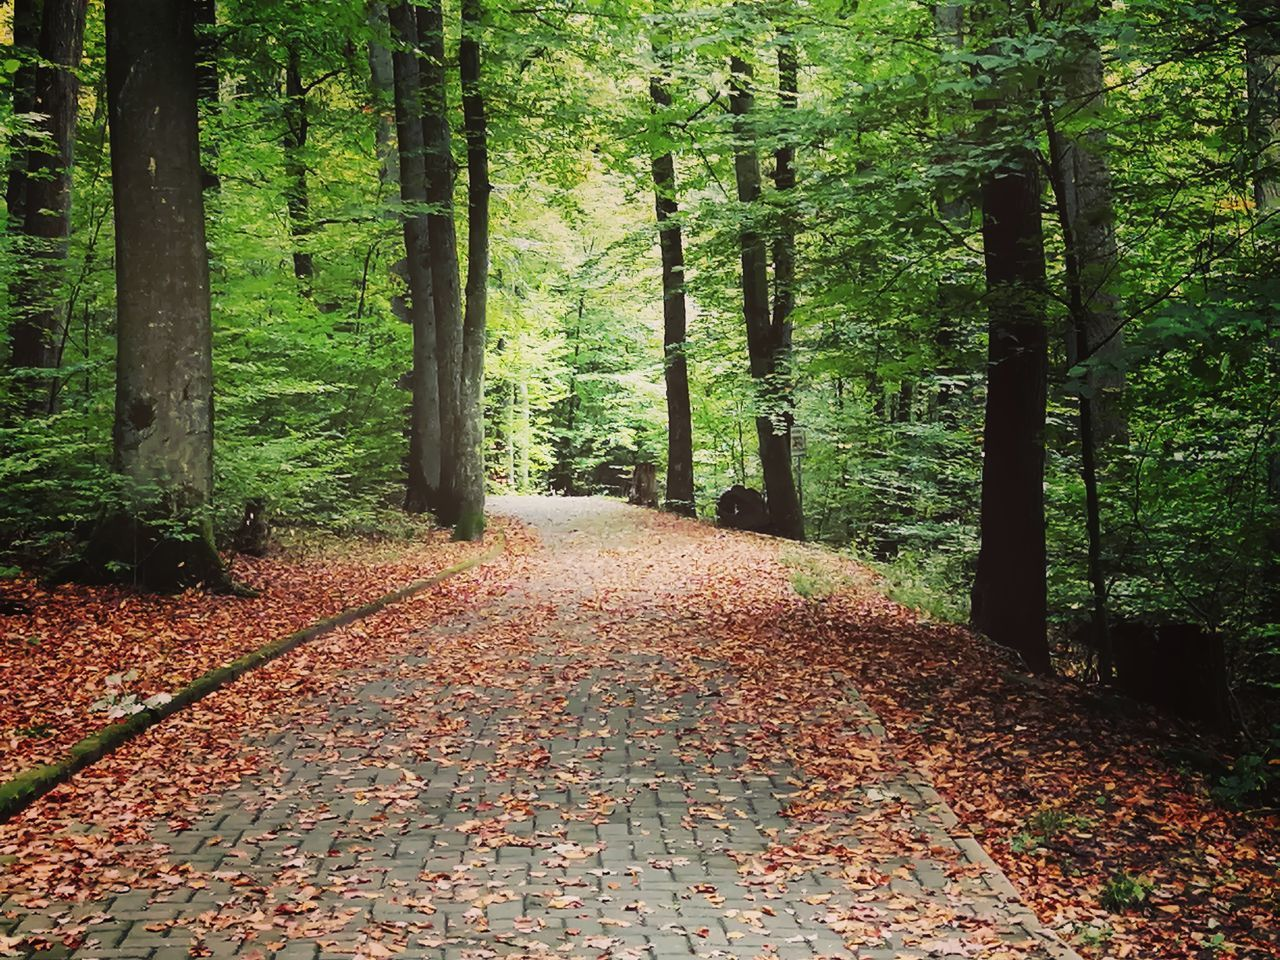 FOOTPATH AMIDST LEAVES IN FOREST